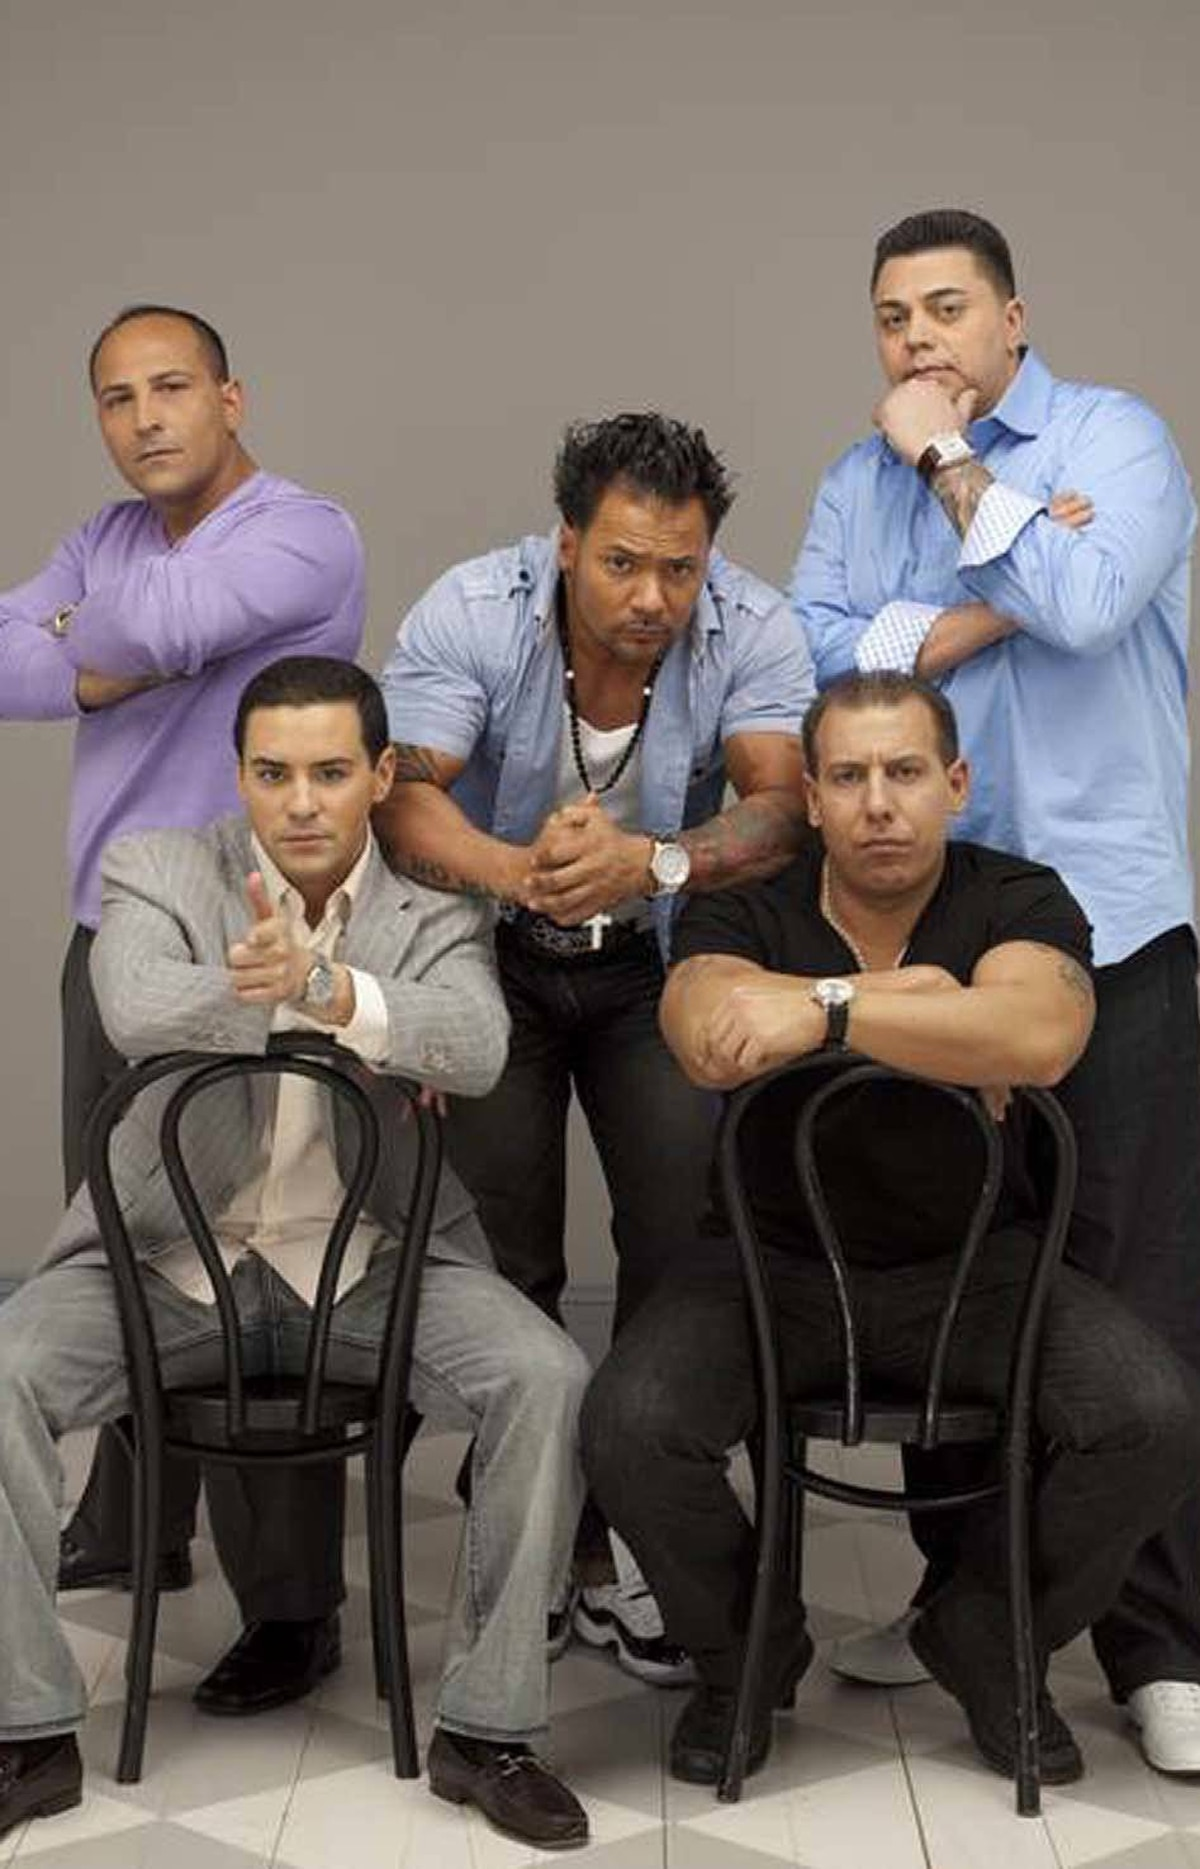 REALITY Mama's Boys of the Bronx TLC, 10 p.m. ET/PT Debuting tonight, this new program is TLC's version of Jersey Shore, with one significant tweak. Whereas the guidos and guidettes of Shore are footloose and fancy-free, this eight-part series profiles five brash Italian-American friends with one big thing in common: Each one still lives with his mom in the Bronx, N.Y., and is darn proud of it. Tonight's first episode introduces Anthony, Giovanni, Peter, Frankie and Chip, each in his 30s and each completely dependent on their mothers for everything from home-cooked meals to clean underwear. In the second show, Peter prepares a surprise birthday party for his girlfriend, with a little help from mama.